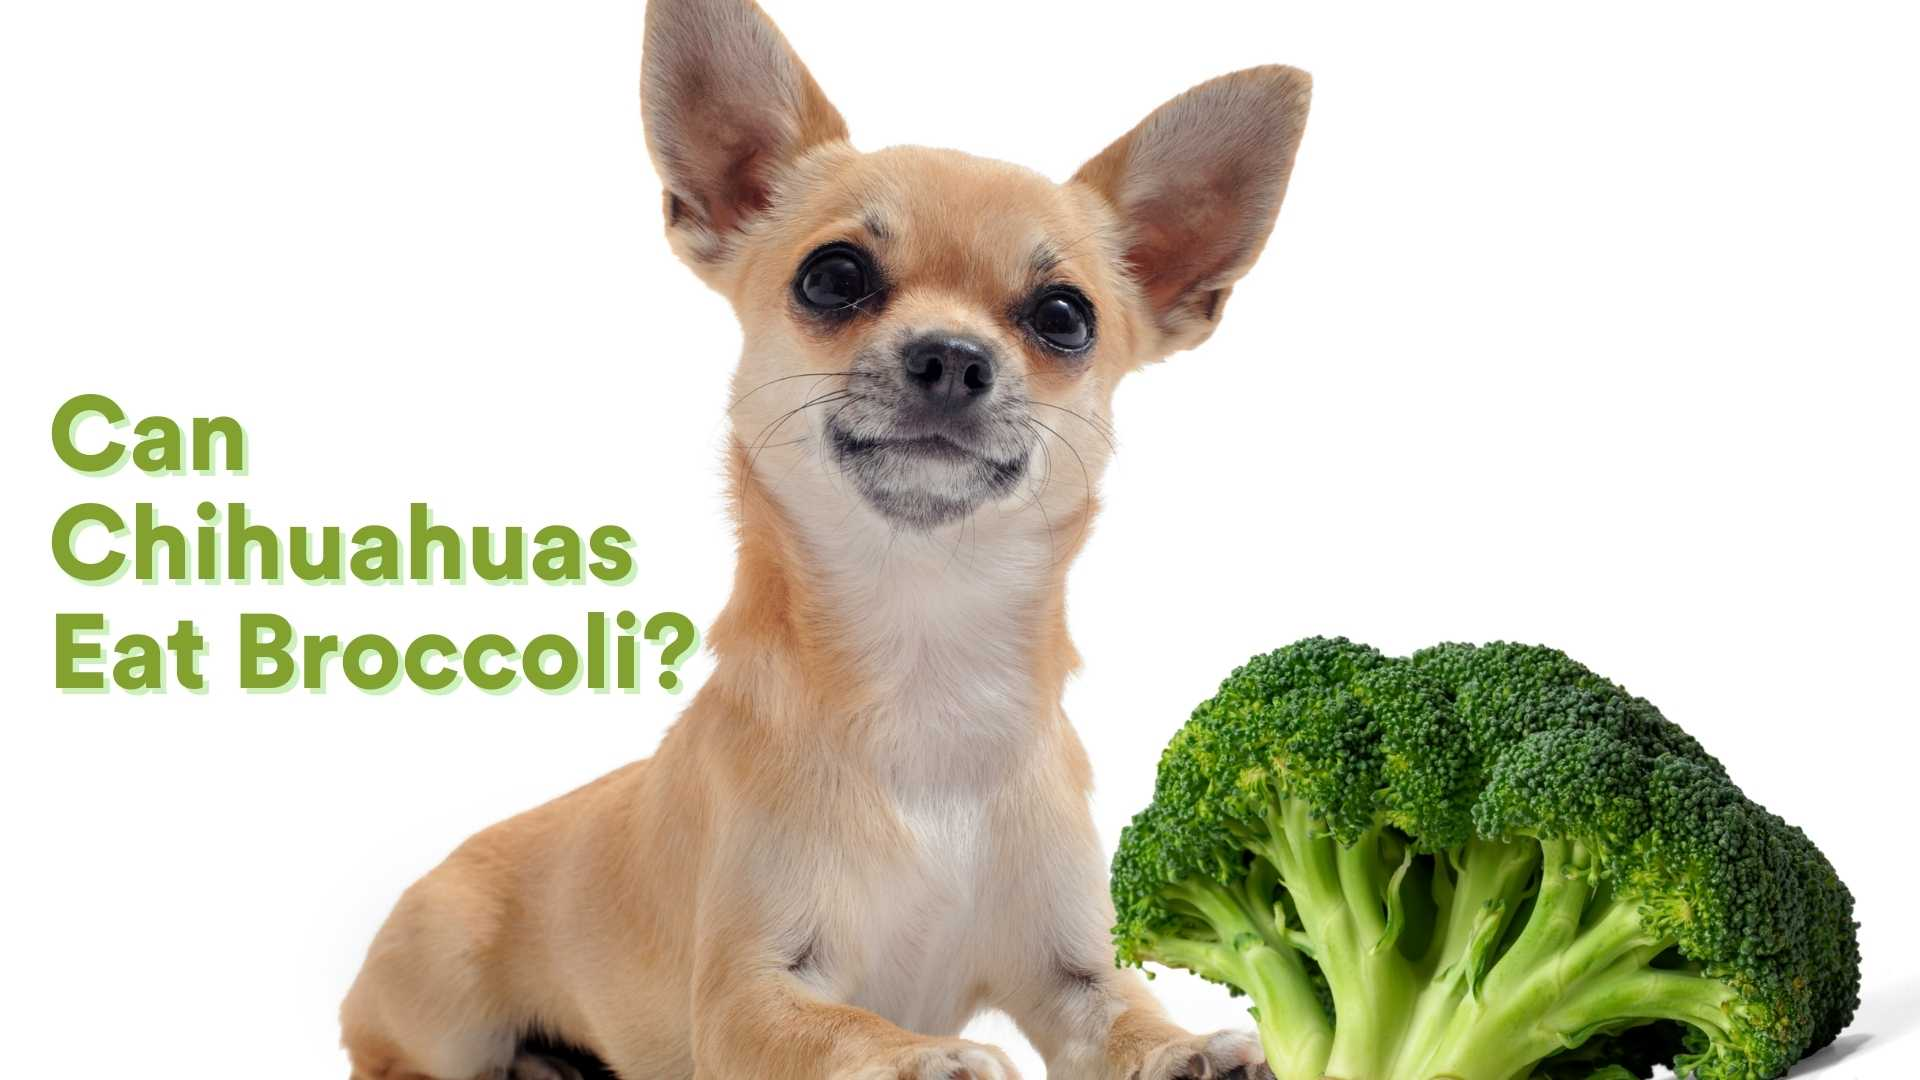 The Broccoli is considered to be one of the most iconic images of a vegetable. Many people dislike this vegetable for being too bland, while many appreciates it for all the health benefits it could bring to the table. Yet it is often the go-to food for parents looking to feed their children a healthy diet. How about our fur parents looking to feed their chihuahuas a healthy diet? Can Chihuahuas eat broccoli? The answer to that question is, yes, chihuahuas can eat broccoli. However, it is important to remember that dogs are omnivores with a particular knack for meat as they are descendants of wolves. While they are able to eat both meats and vegetables, most of the time, they would prefer meat over vegetables. Regardless, if your Chihuahua happens to have the appetite for vegetables, the broccoli is one of the best option because of all the health benefits it could bring! In this article, we will discuss the nutritional value of broccoli along with the benefits this vegetable could have on your chihuahua's health. Moreover, we will give you some tips on how to serve and incorporate broccoli to your chihuahuas diet, and lastly, we will discuss how much broccoli should a chihuahua eat and the inherent risks that come along with it. Vitamins and Minerals from Broccoli Fiber - Broccoli is good for your dog's digestive system because it has a lot of fiber. The problem with broccoli stems though can make them more difficult to digest than the florets on top so trimming those off before giving it makes sure you're delivering healthy nutrients right into Fido! Vitamin C - Vitamin C is an important nutrient for maintaining the health of your dog. While their bodies produce some vitamin C naturally, it decreases as they age and may become insufficient because this powerful antioxidant isn't stored in fat cells like other nutrients are - meaning more must be taken throughout life to prevent deficiency symptoms! Vitamin K - The vitamin that keeps your dog active and healthy. Bon